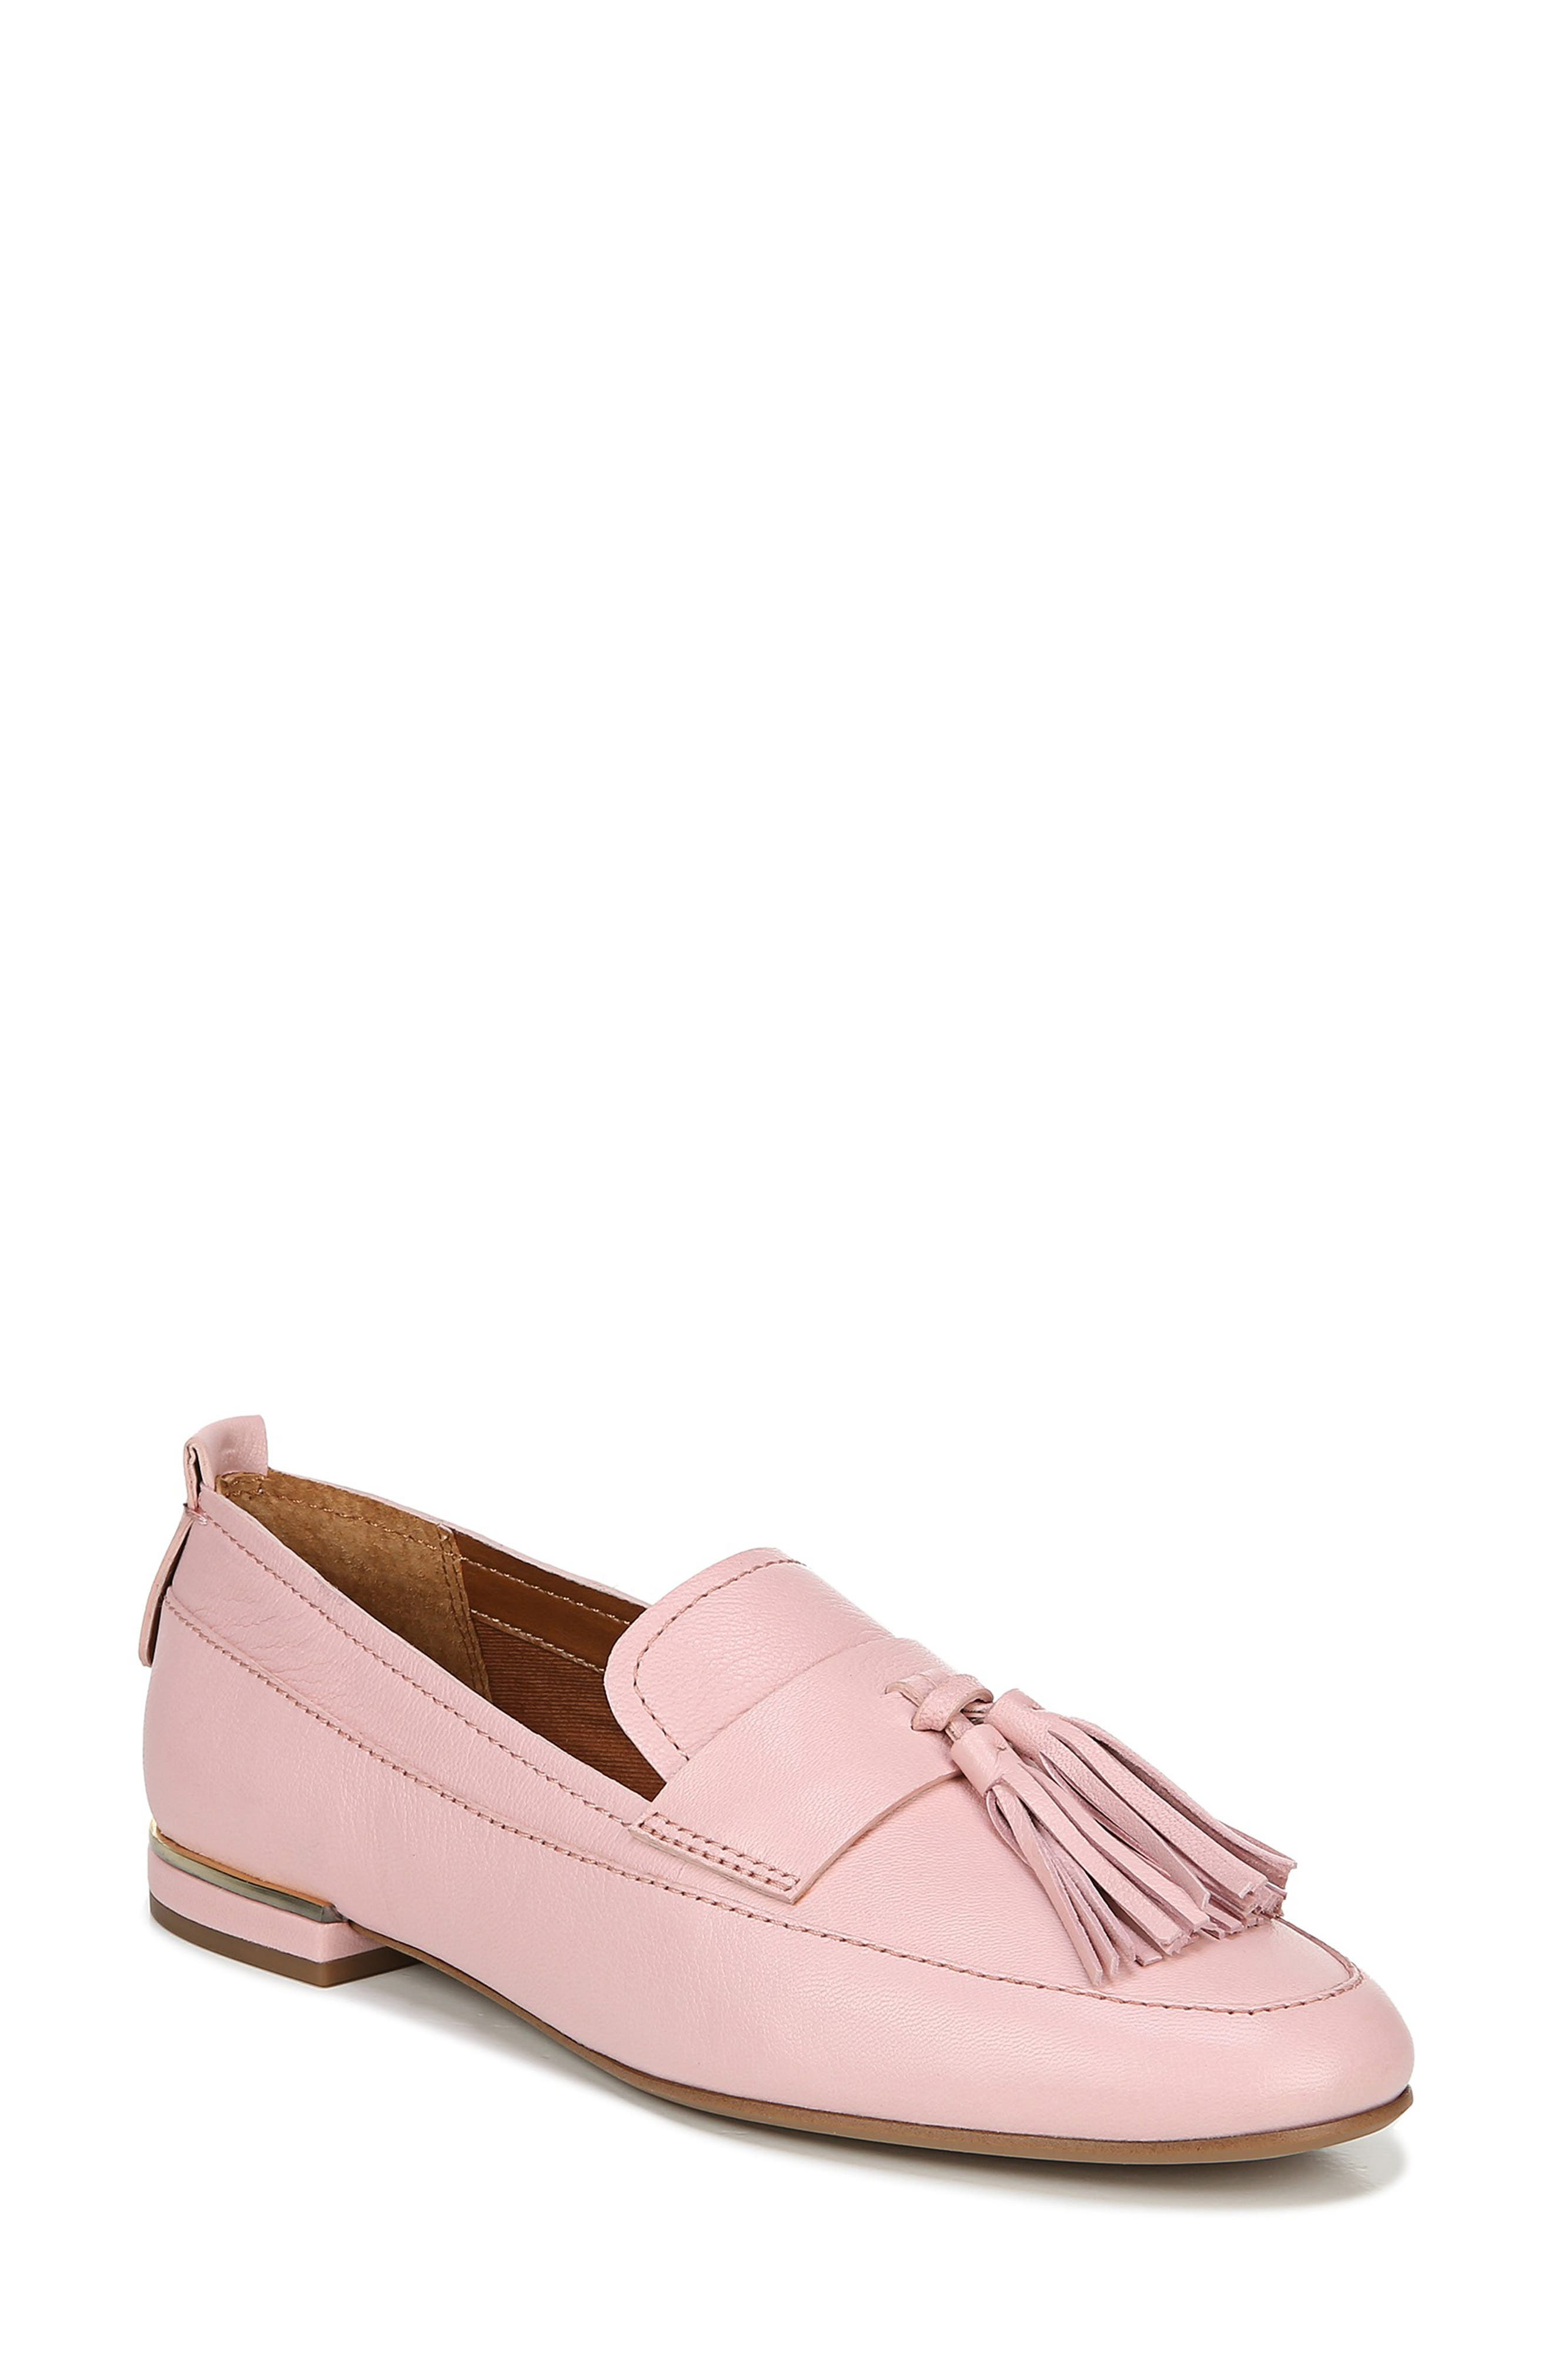 A pair of swingy tassels underscores the classic appeal of an apron-toe loafer that adds sophisticated polish to any look. Style Name: Franco Sarto Bisma Loafer (Women). Style Number: 5992431. Available in stores.